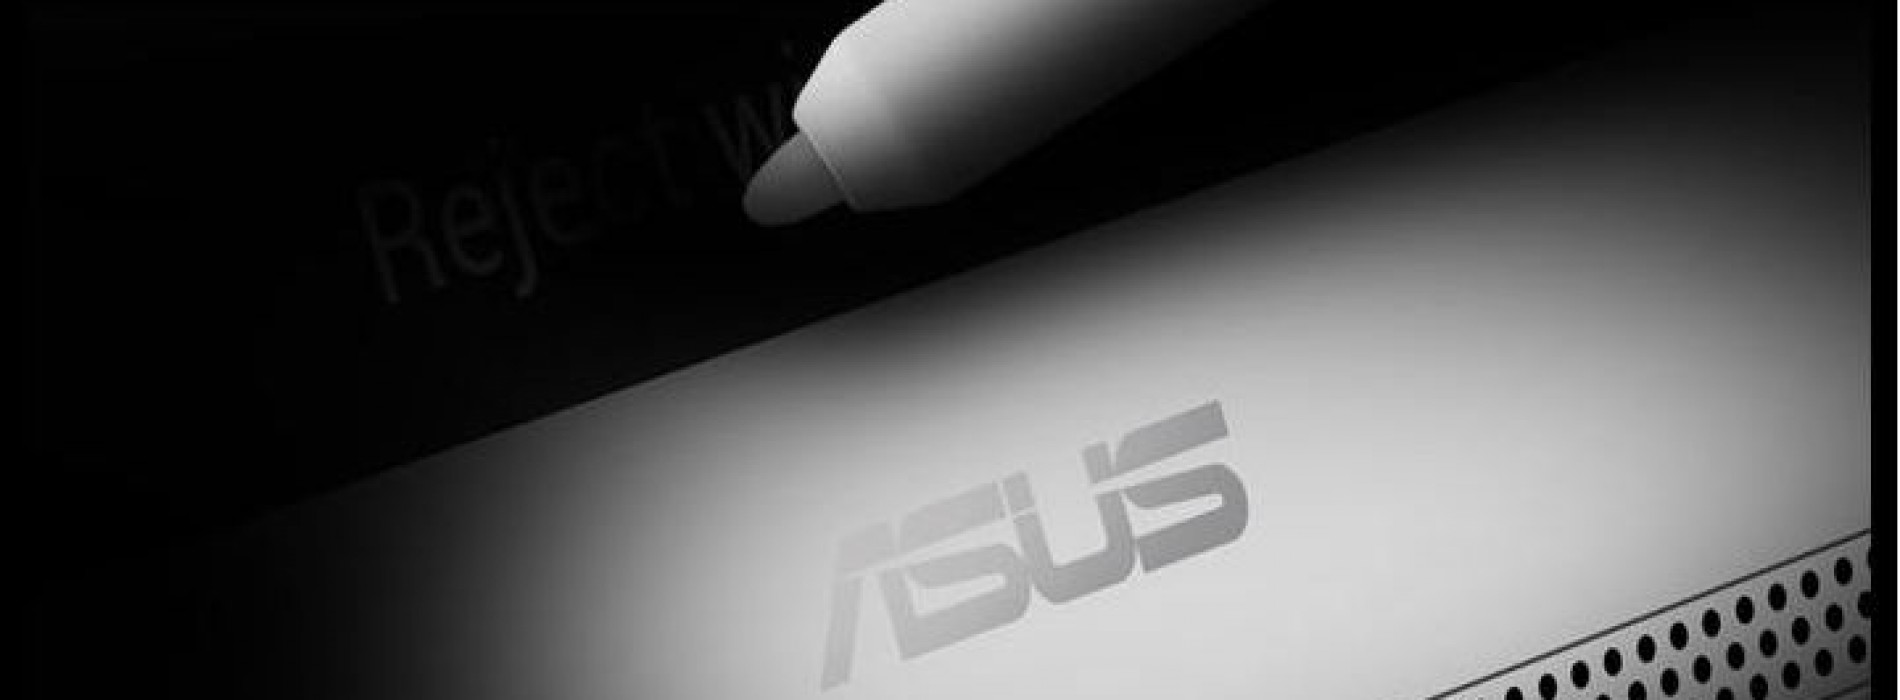 Asus teasing next-gen Transformer for September 4